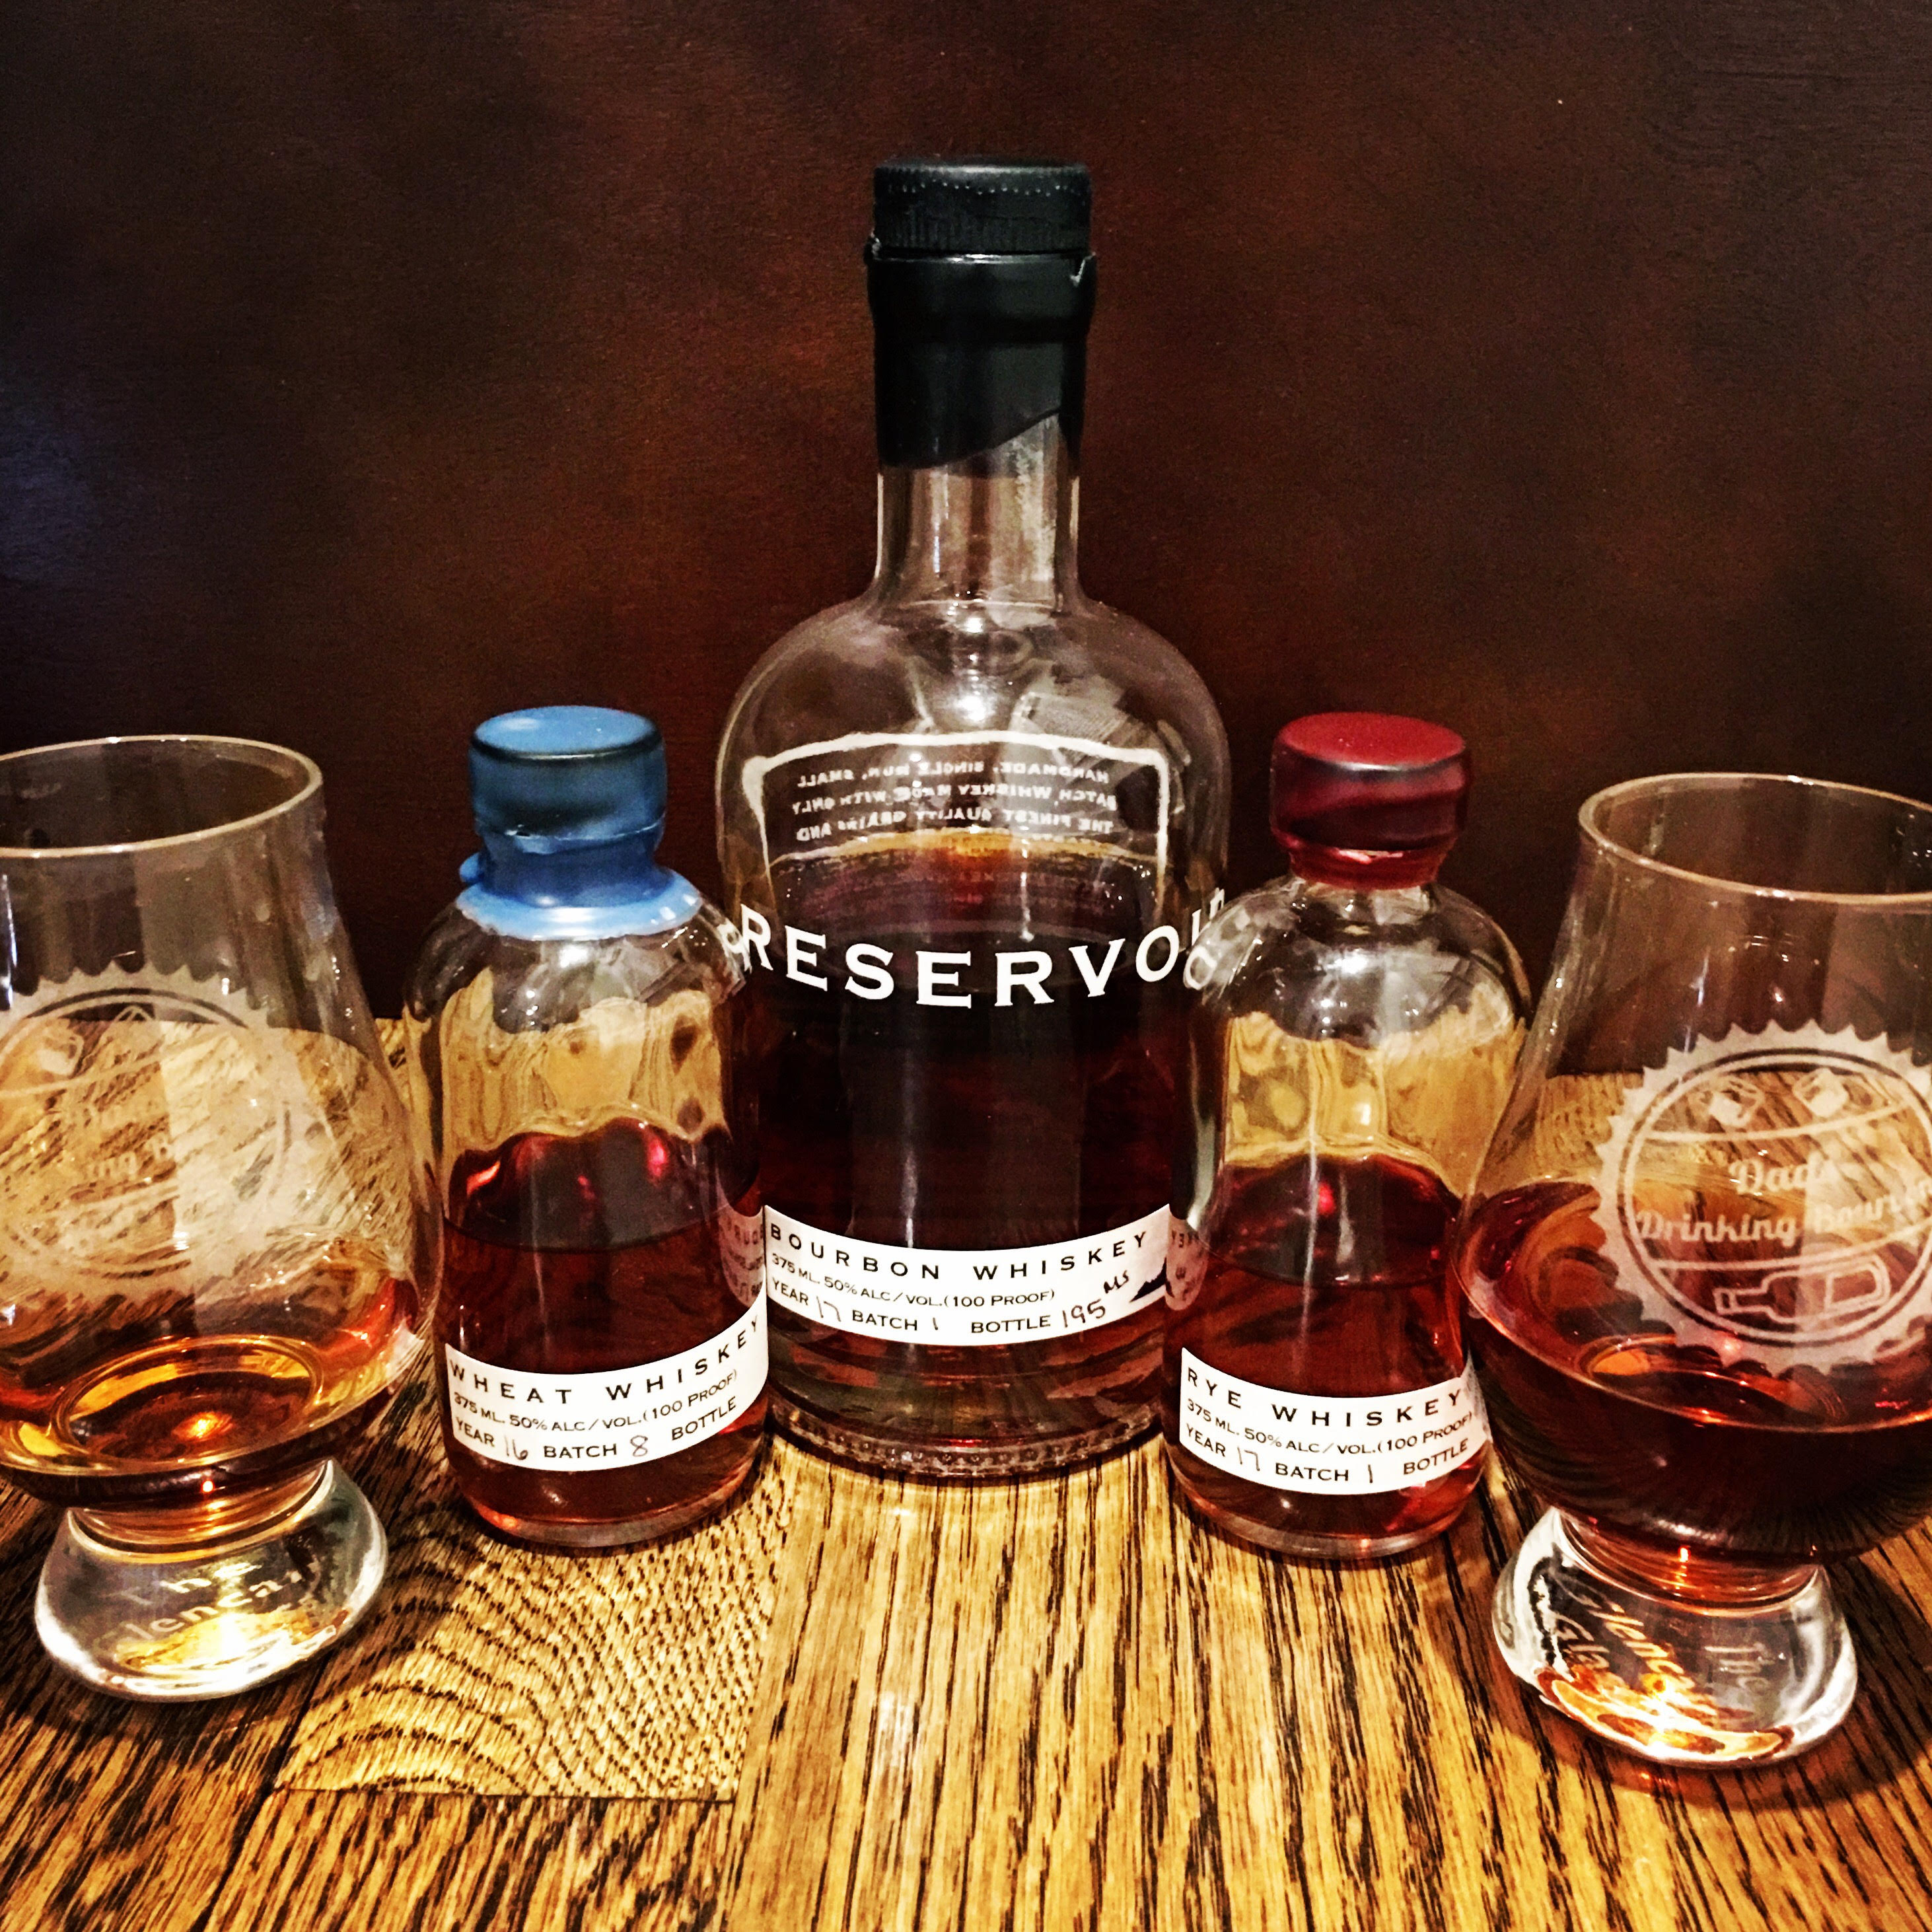 Reservoir Bourbon, Wheat, and Rye